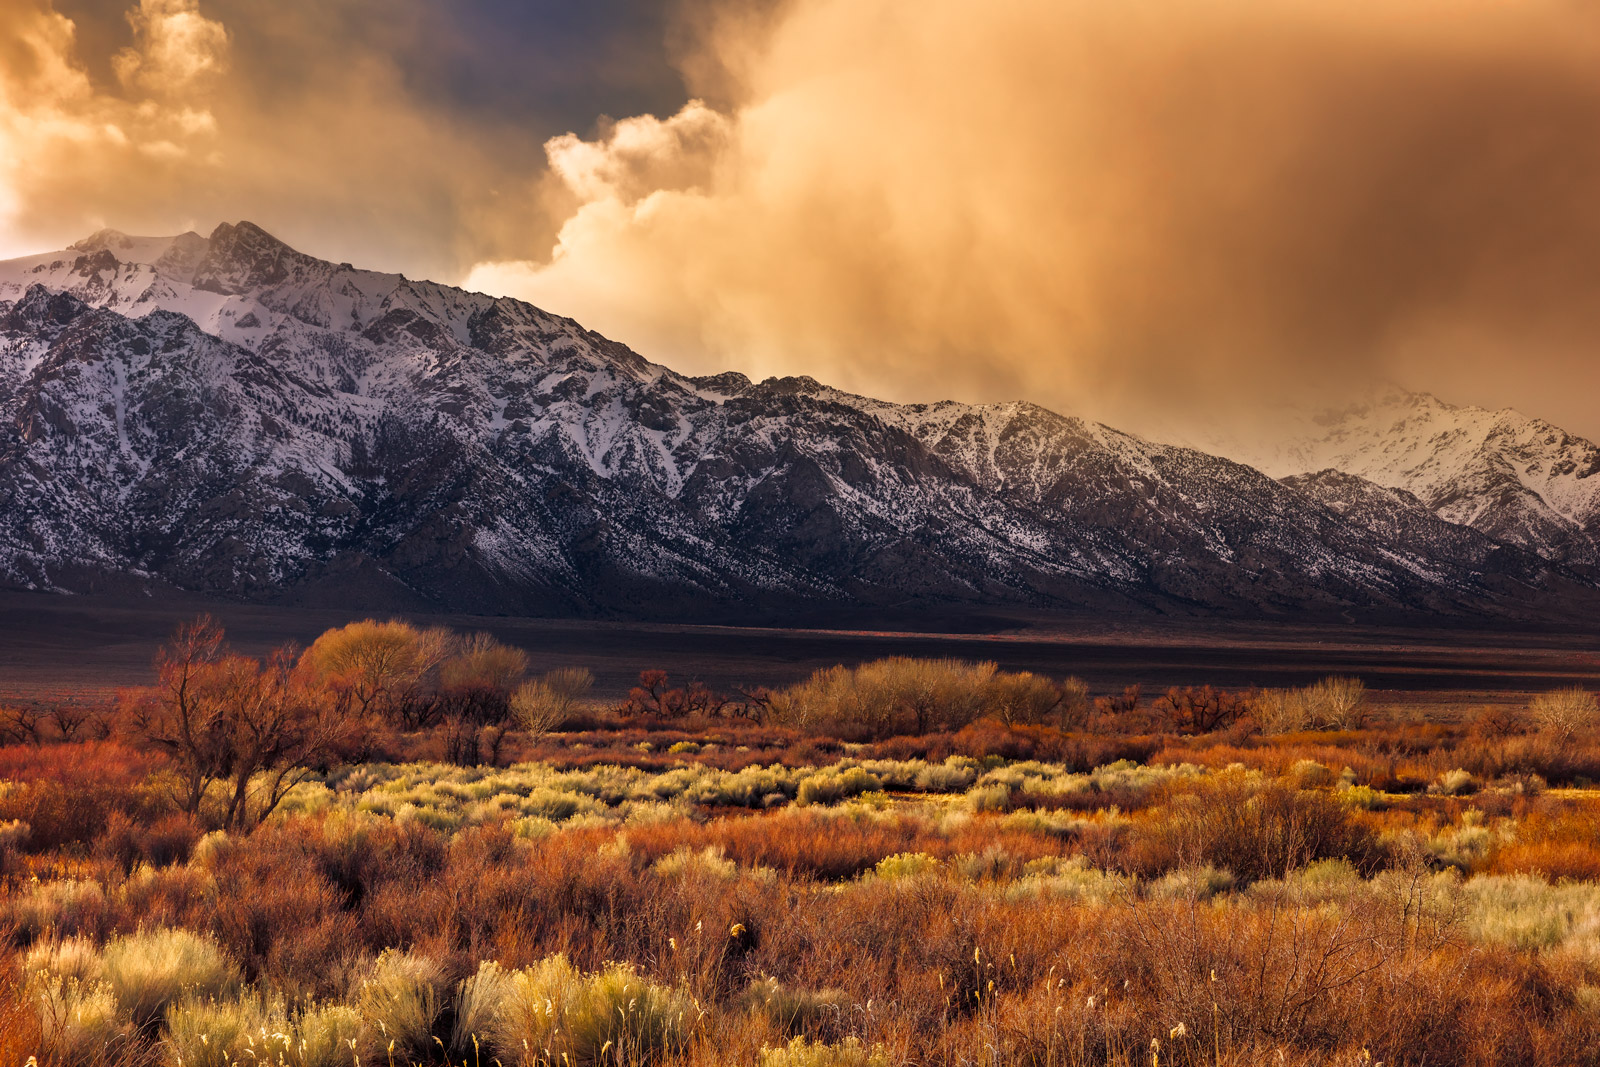 California, Eastern Sierra, Winter, Sunset, Mountain